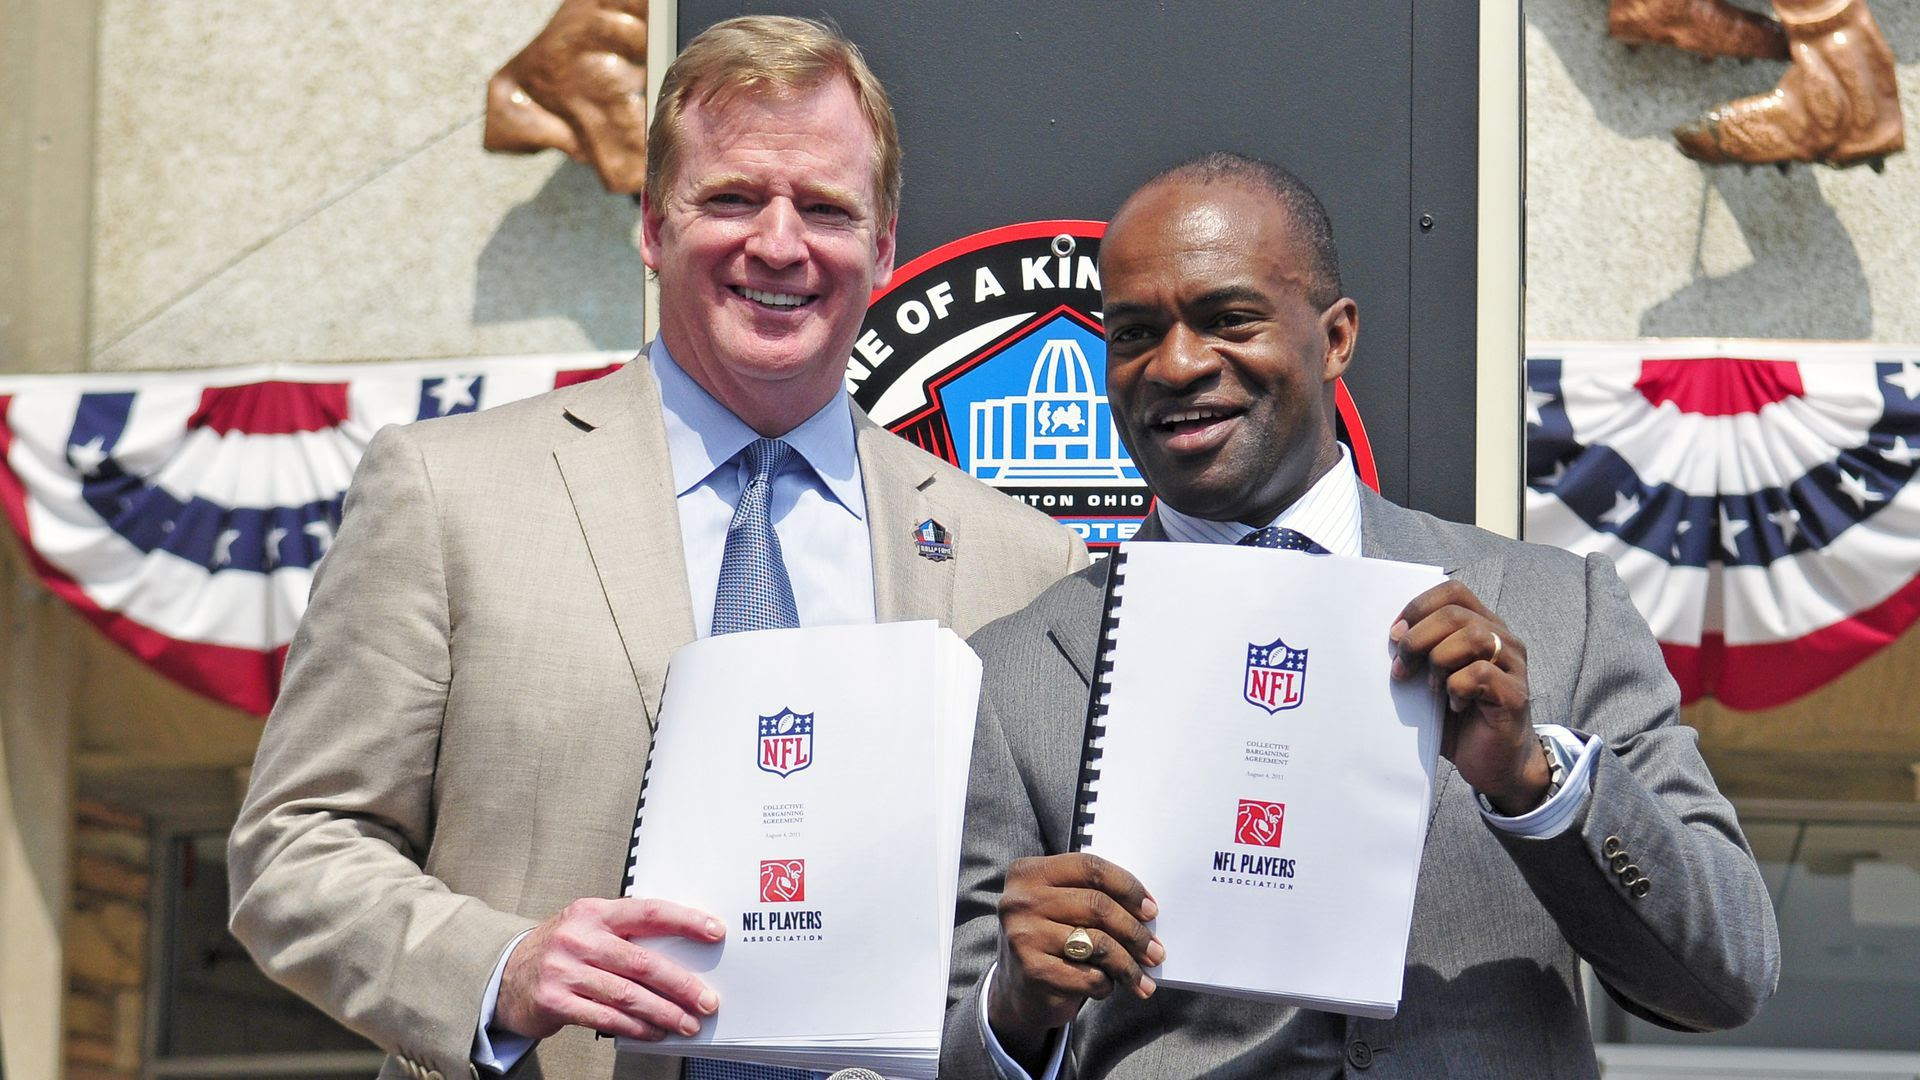 NFL commissioner Roger Goodell and NFLPA executive director Demaurice Smith after signing a new 10-year CBA in 2011. Photo: Jason Miller/Getty Images